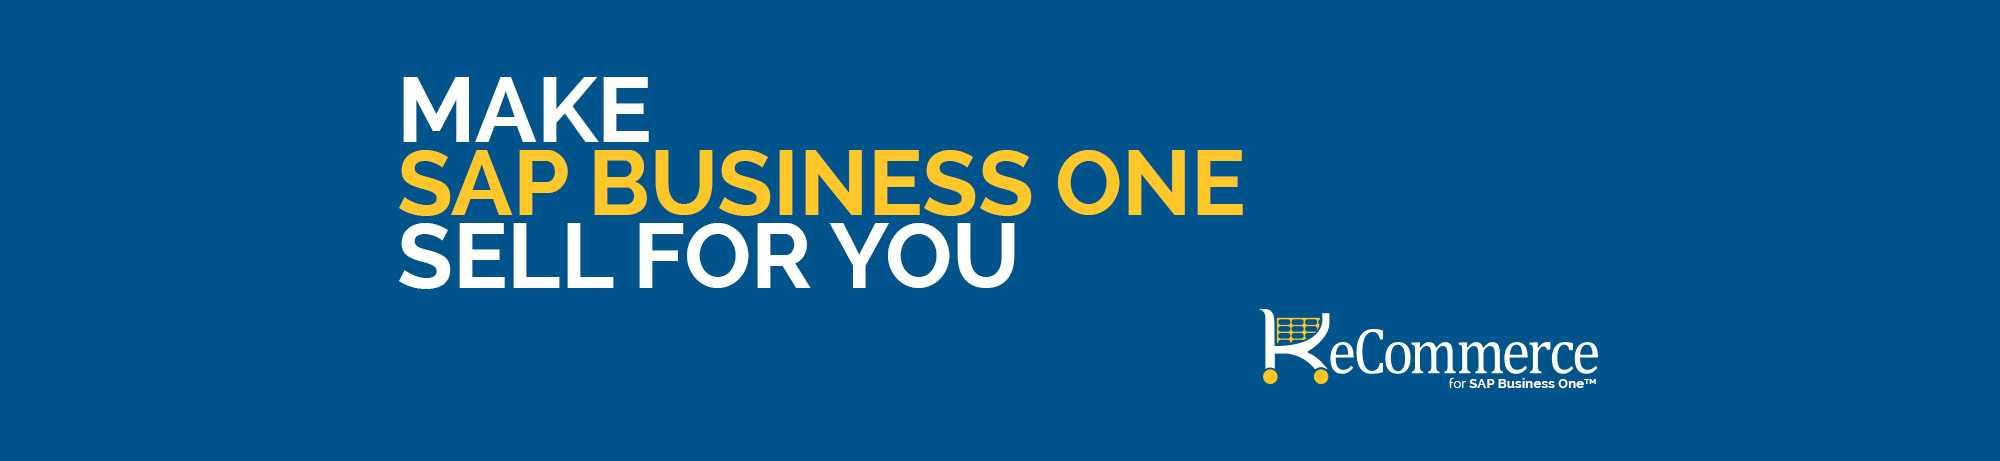 Make SAP Business One Sell For You